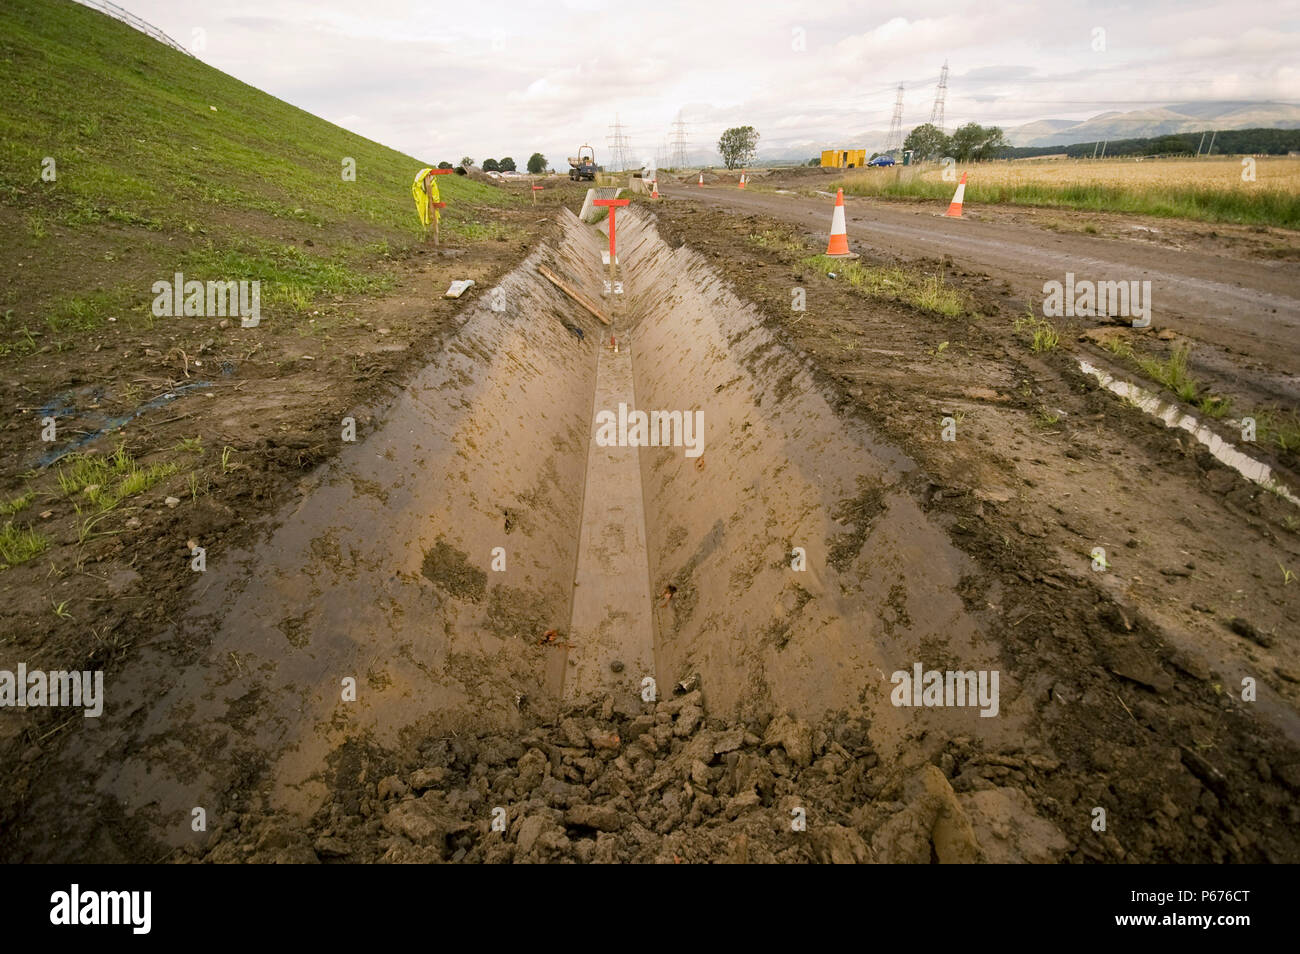 Drainage ditch dug out by a trapezoidal excavator bucket - Stock Image